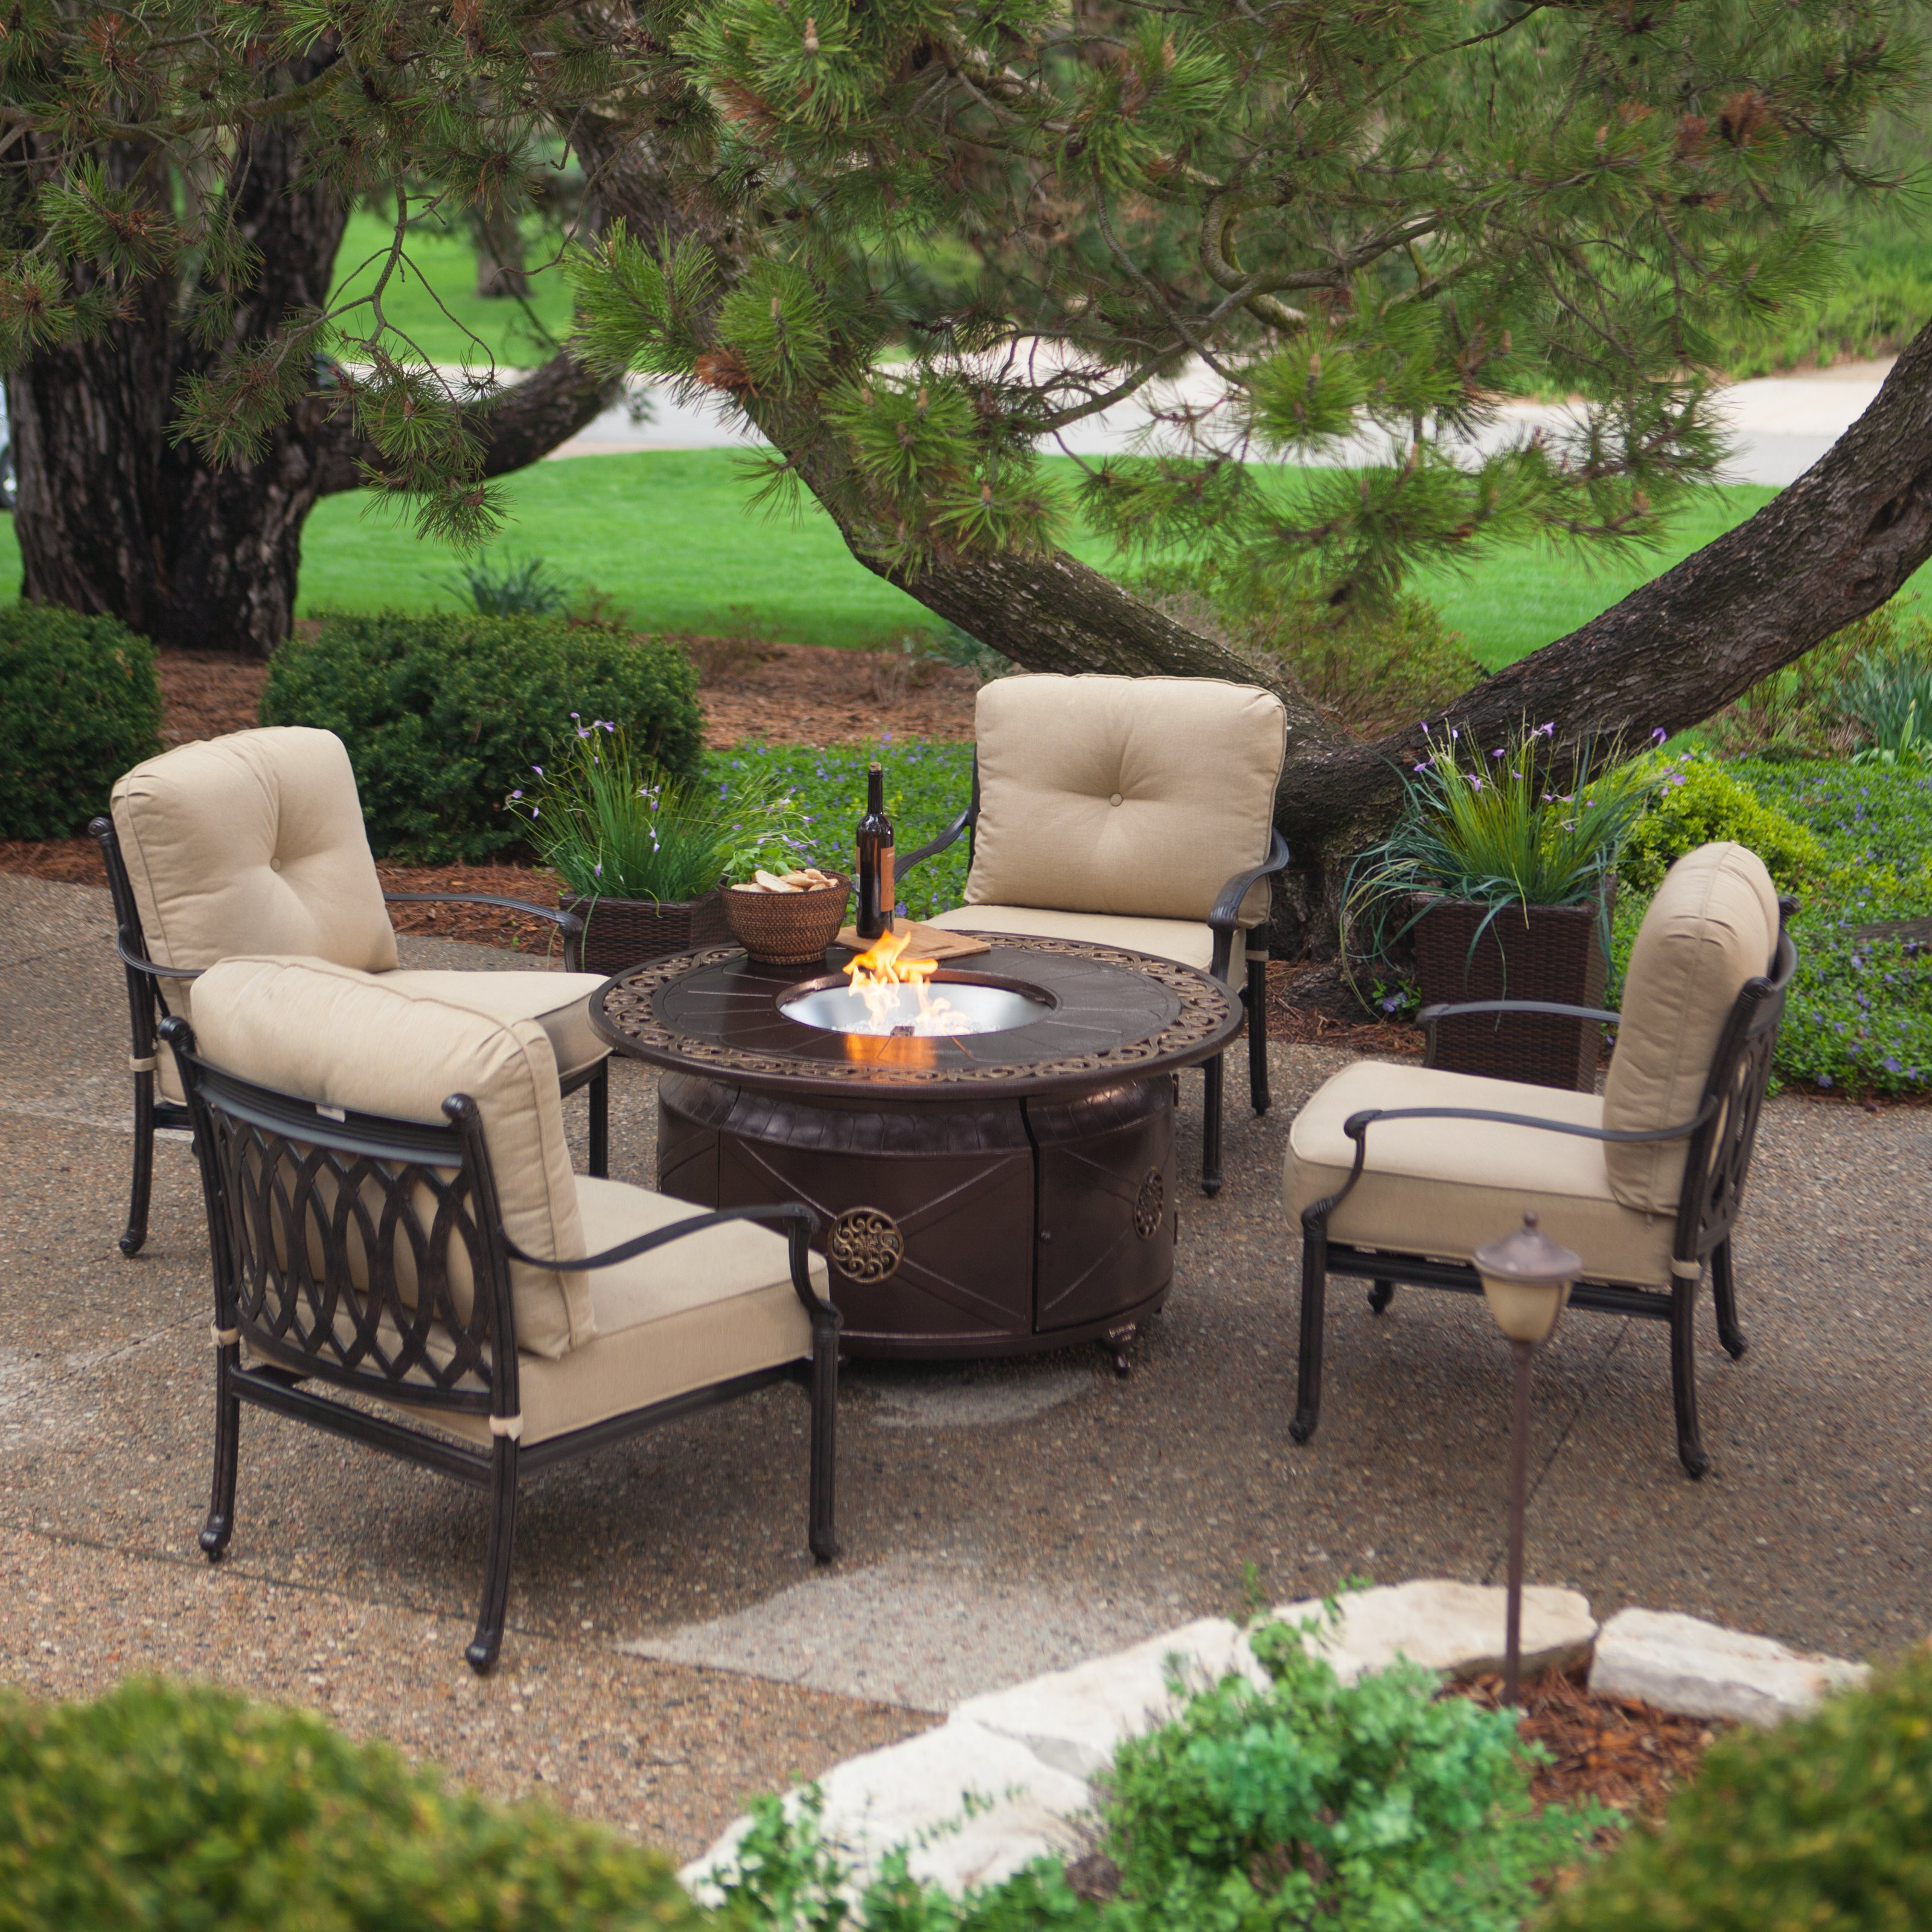 Best ideas about Outdoor Fire Pit Sets . Save or Pin Belham Living Palazetto Cast Aluminum Fire Pit Chat Set Now.